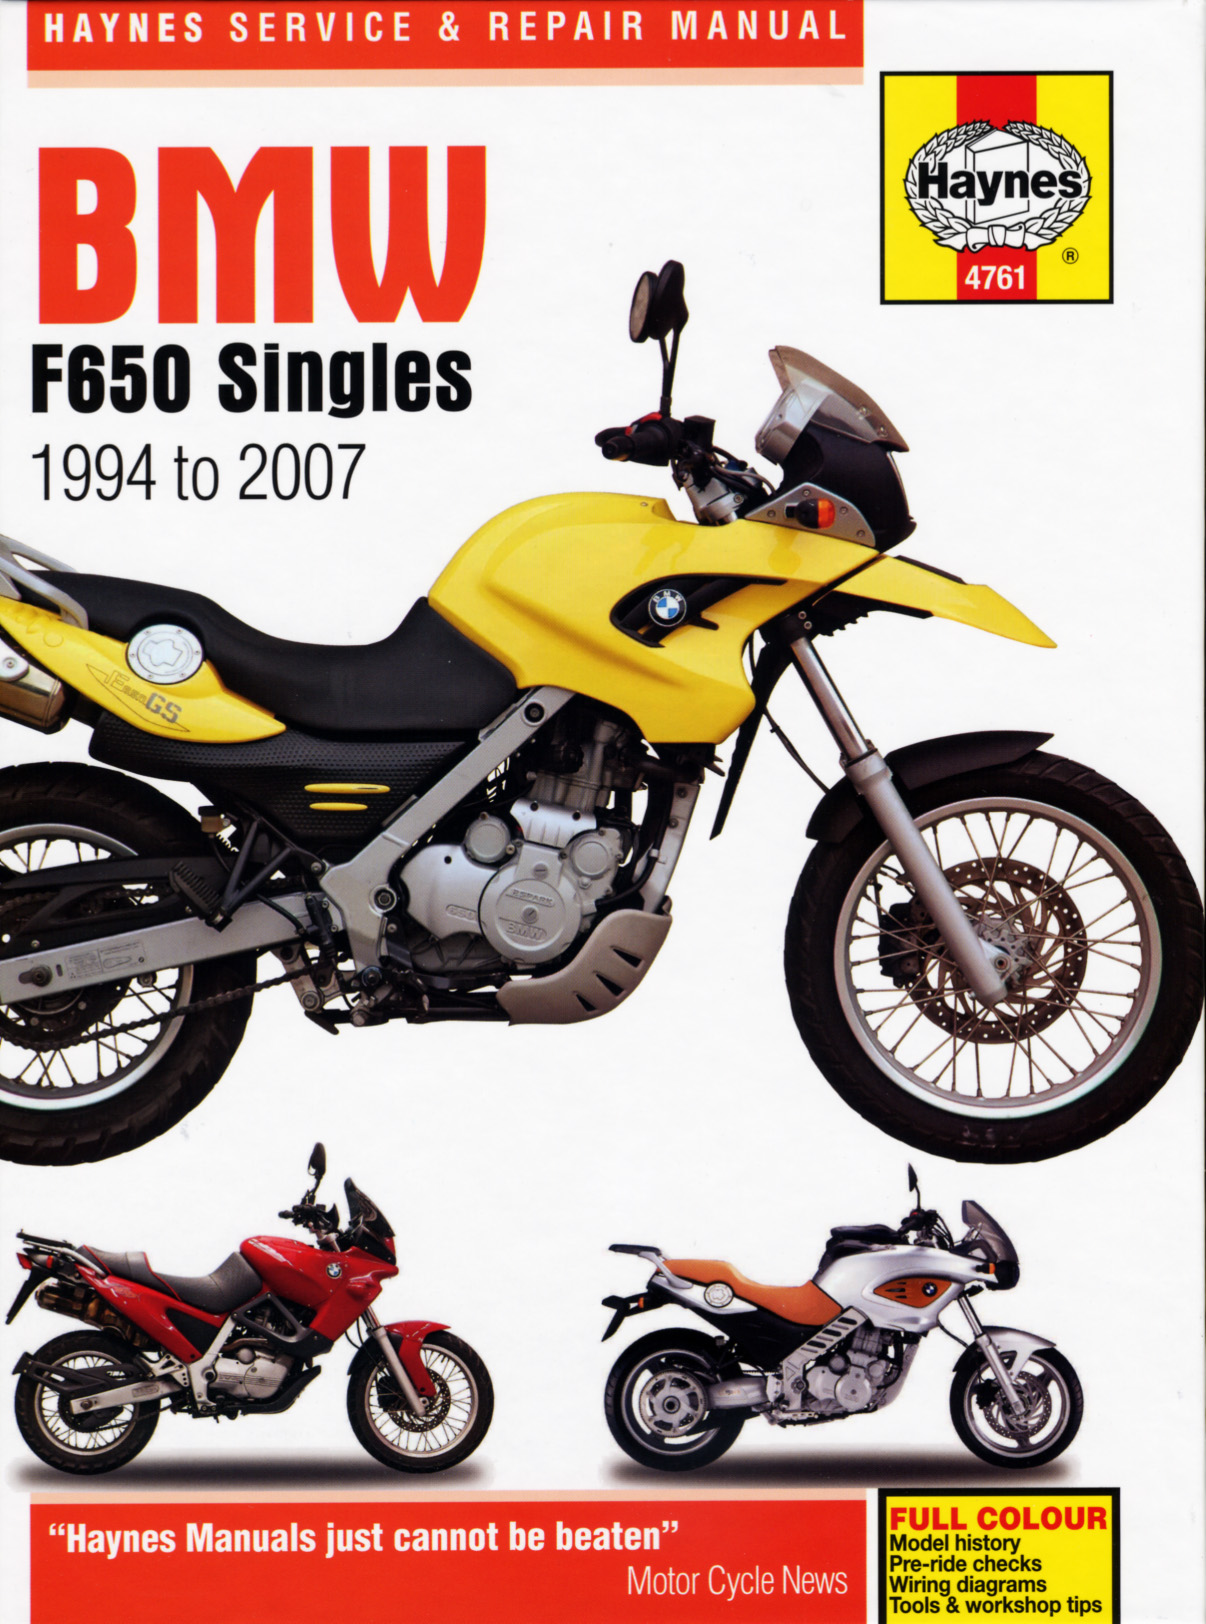 BMW F650 Singles (94-07) Haynes Repair Manual | Haynes Manuals  F Wiring Harness Diagram on 2007 ford focus wiring diagram, 2007 k1200r wiring harness diagram, 2004 super duty fuse diagram, 2007 ford focus fuse diagram, 2007 mustang wiring harness diagram, 4l60e pinout diagram,